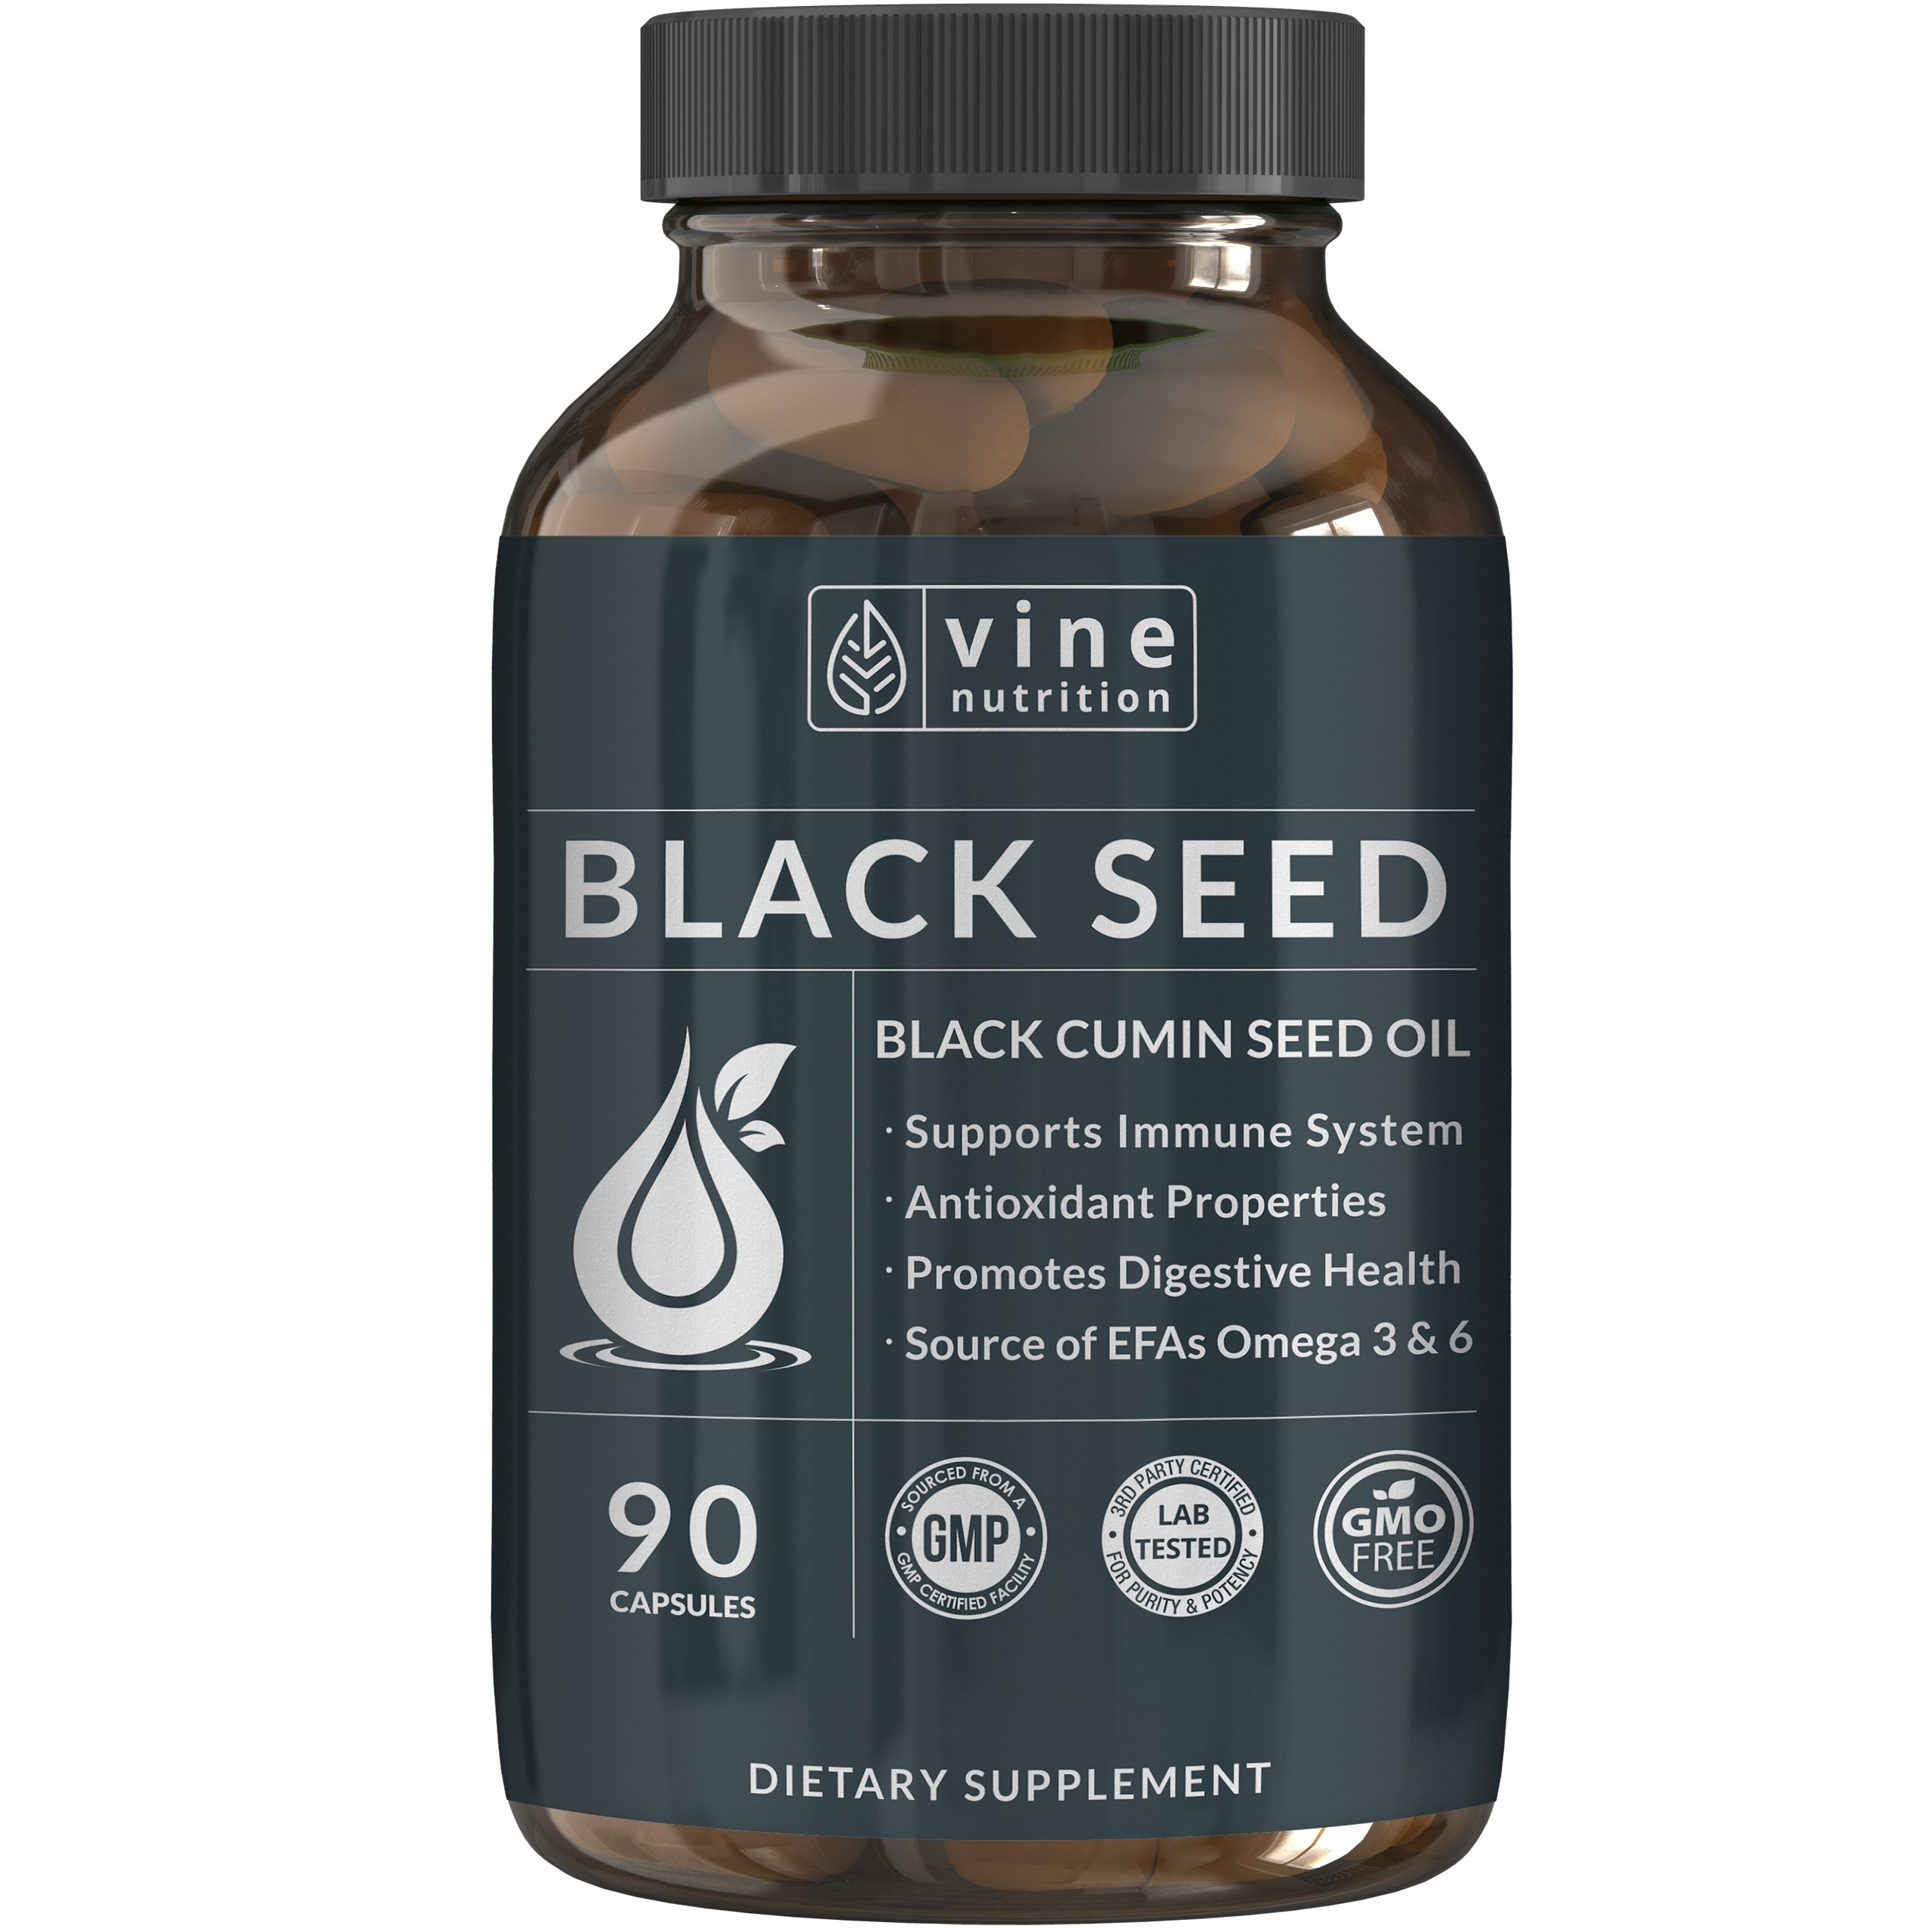 Premium Black Seed Oil Capsules - Nigella Sativa - Immune System Support Soft Gels   Cold Pressed Antioxidant Vegetarian Black Cumin Supplement   500MG Made In The USA By Vine Nutrition